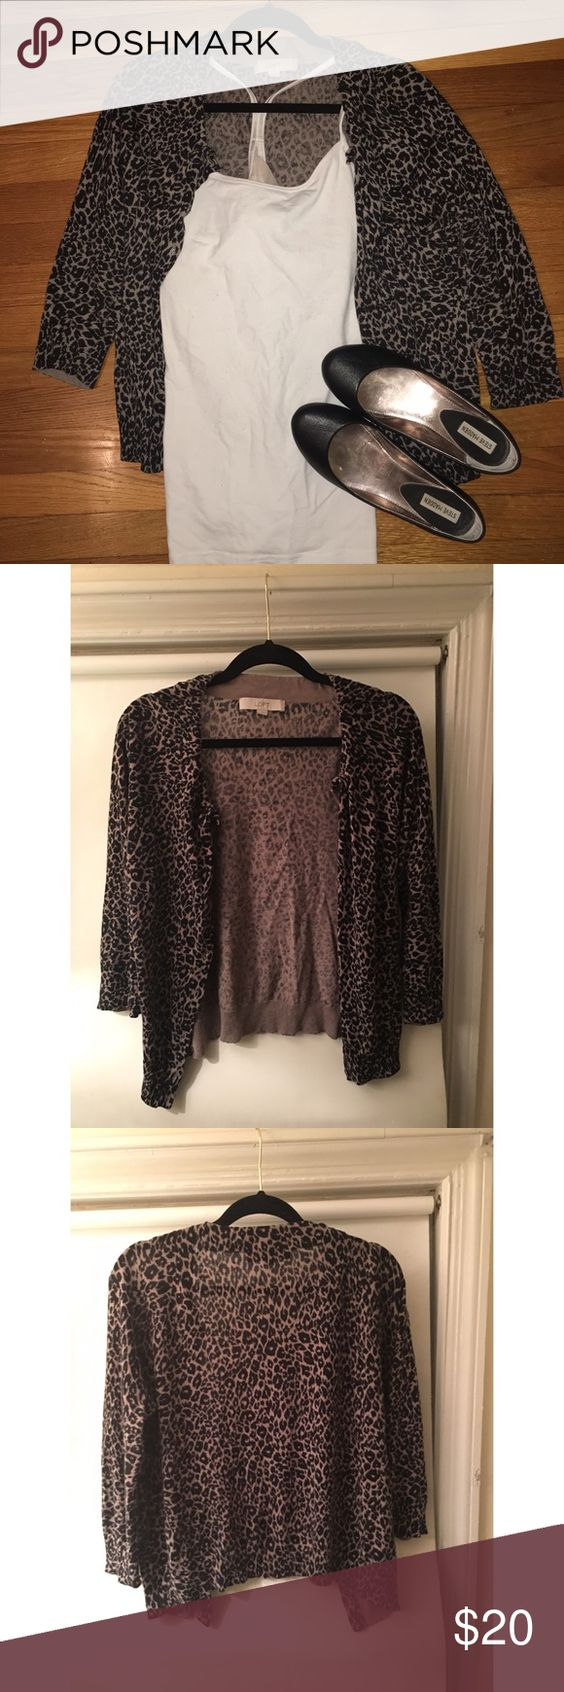 Medium Anne Taylor Loft Leopard Print Cardigan I loved this leopard print Cardigan, but a medium is just too smug for me! 🌻 gently used Ann Taylor Loft Sweaters Cardigans